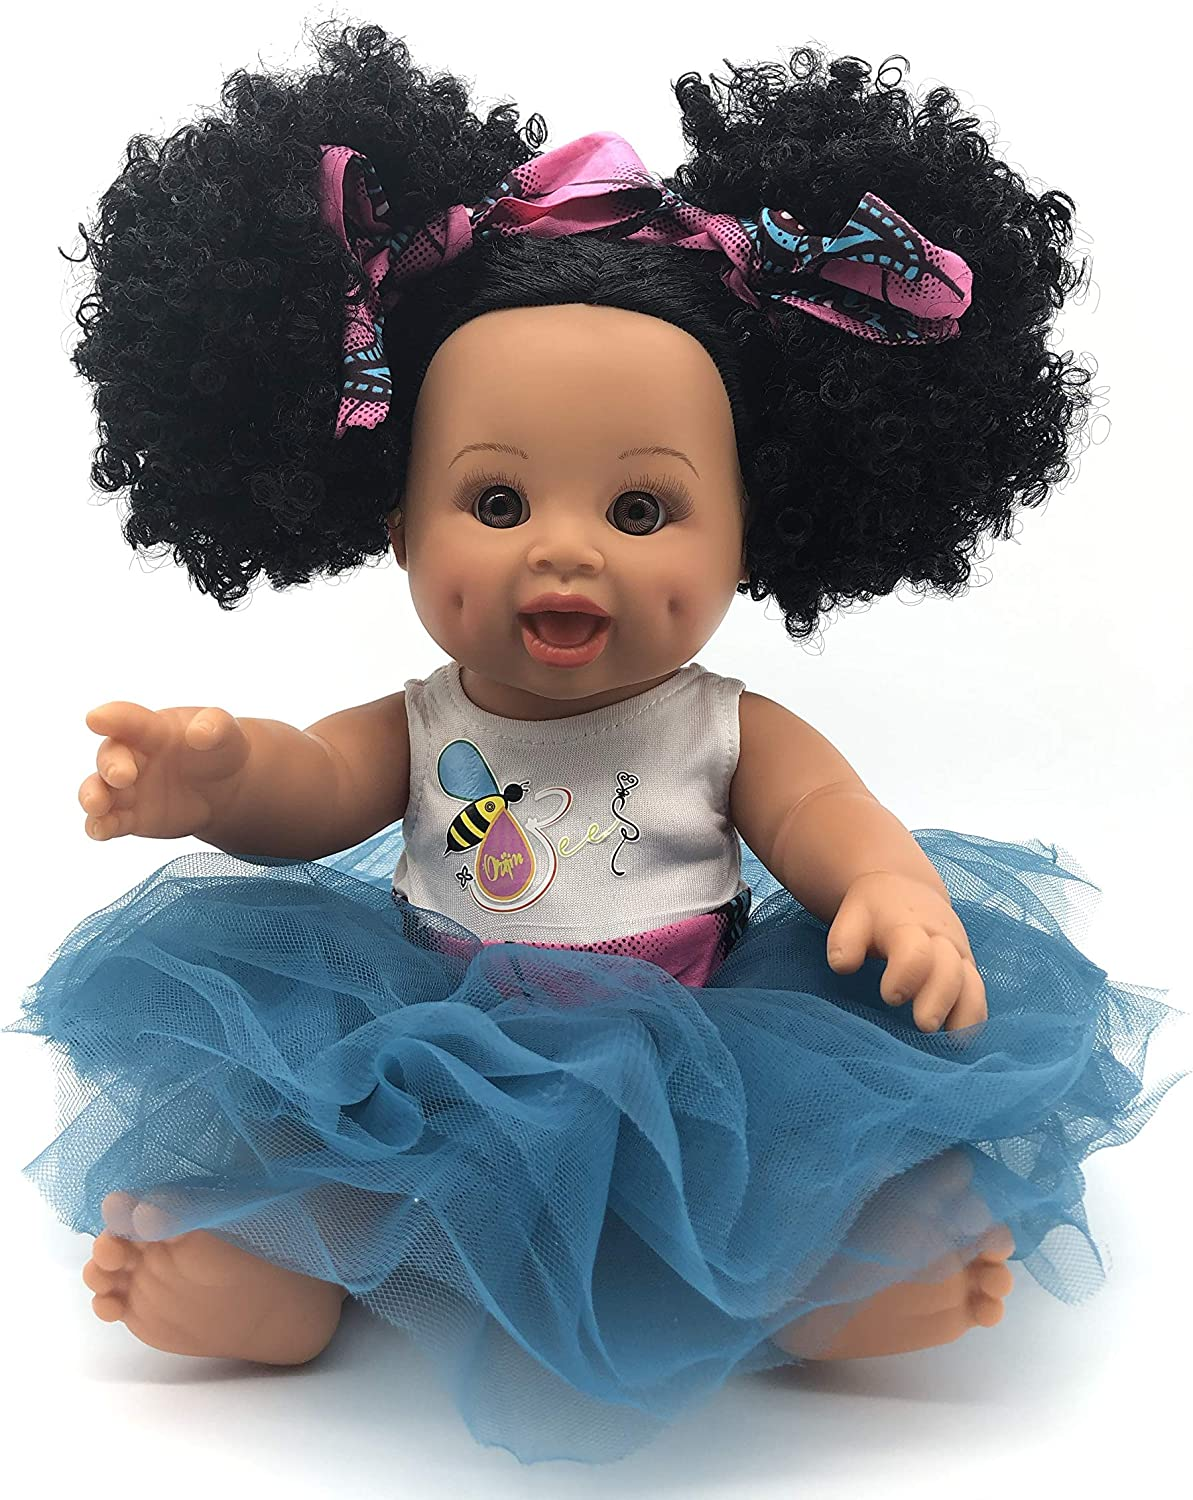 Sweet Puffy Bee African American Direct sale of manufacturer Mixed Black Hispanic Rac Latino Max 72% OFF